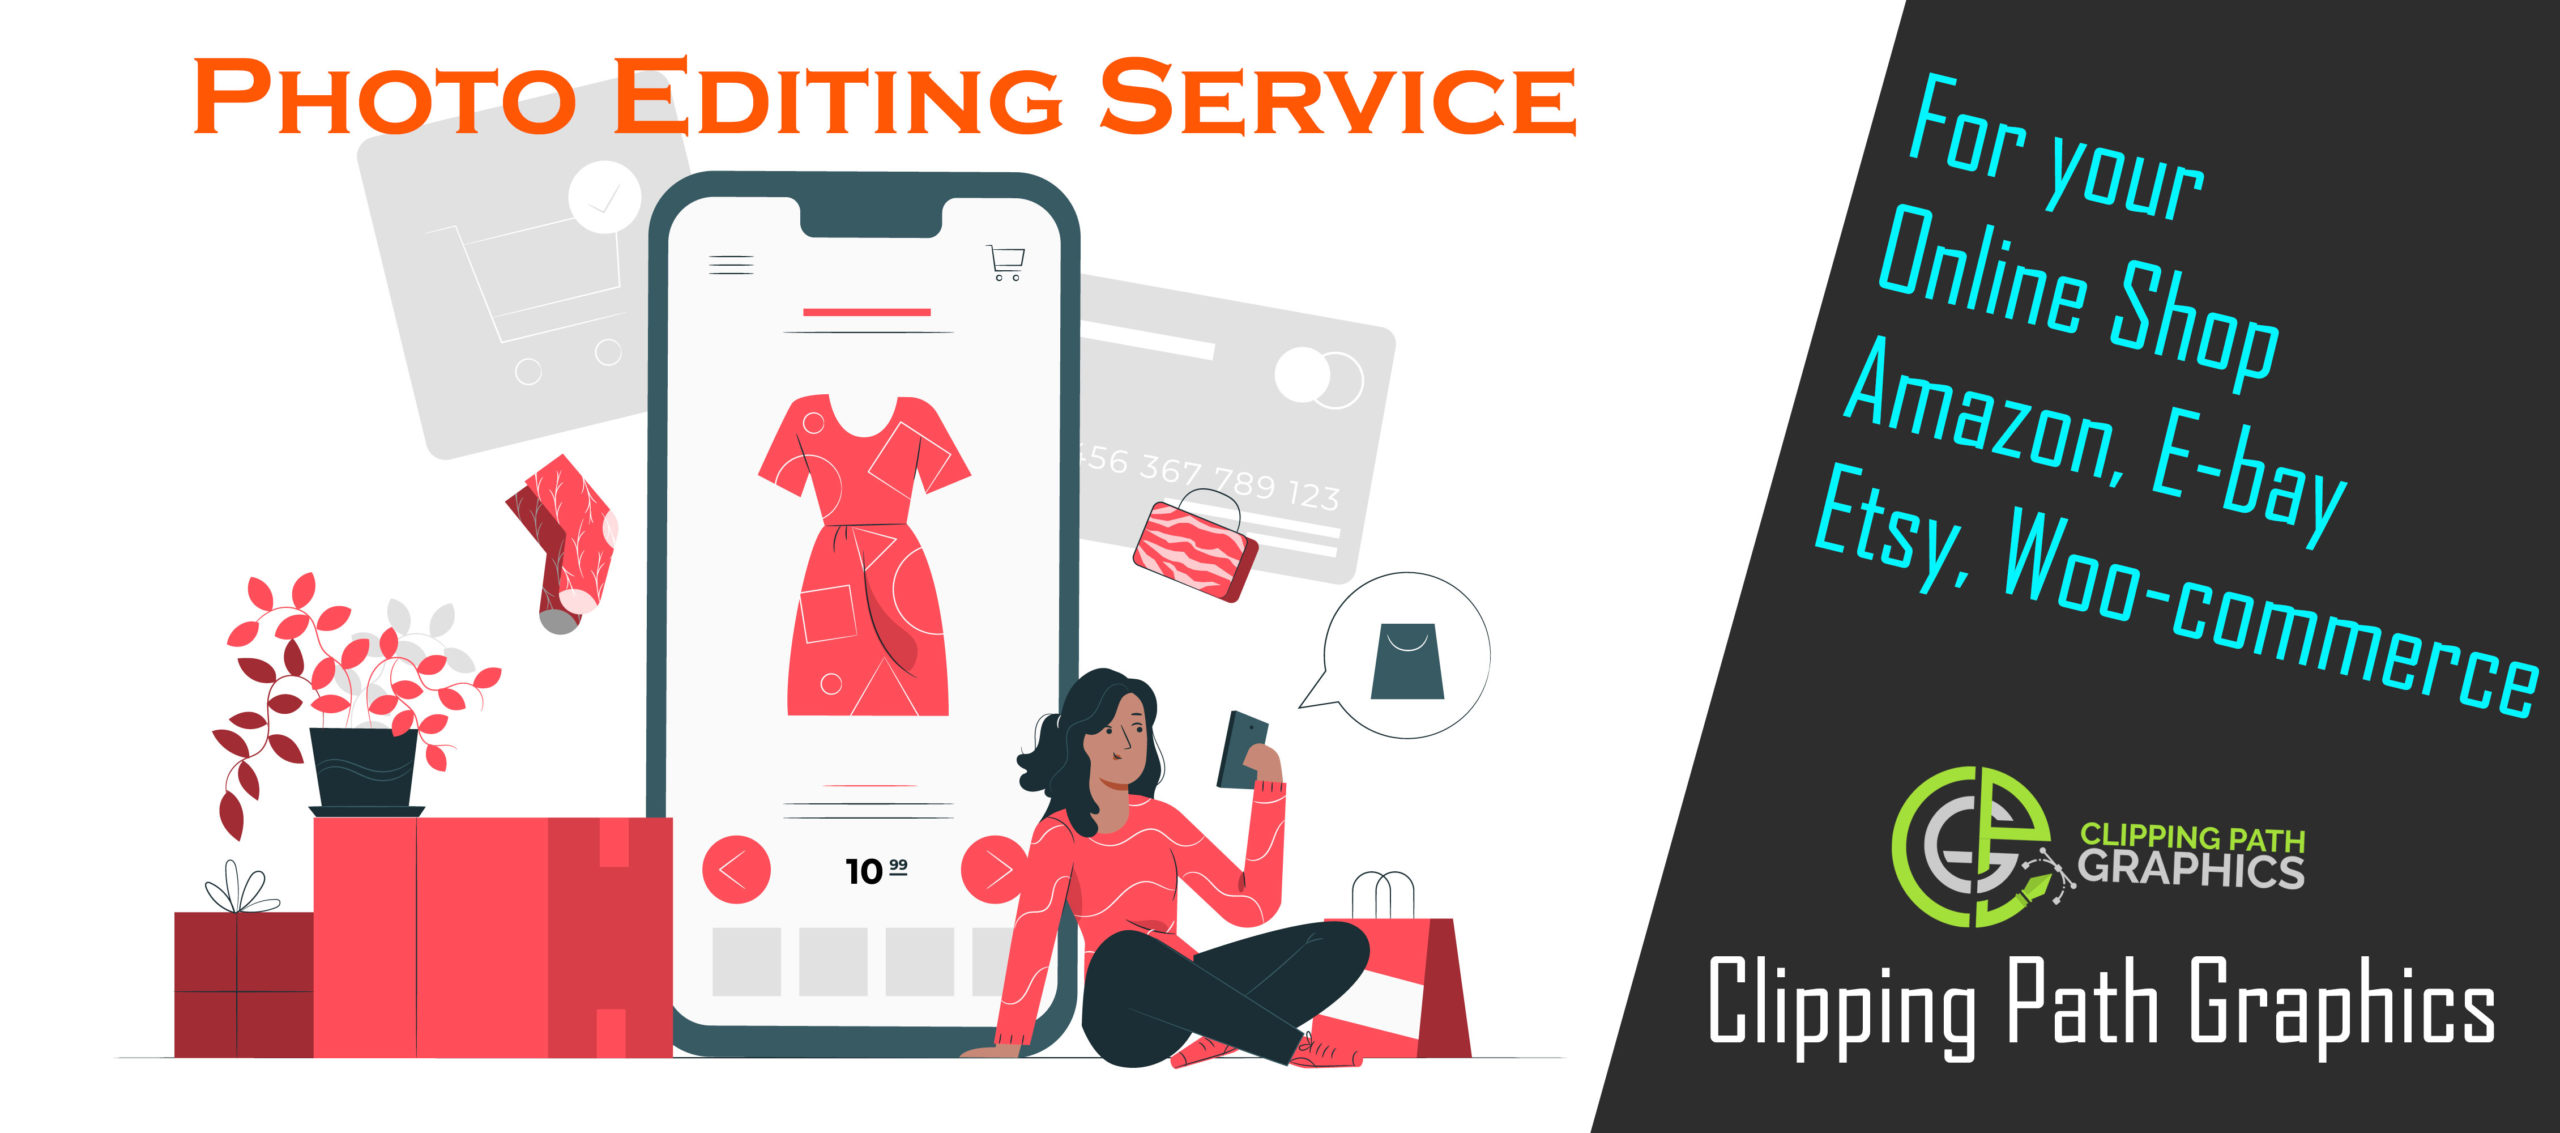 Photo-editing-service-for-ecommerce-online-stores_clipping path graphics